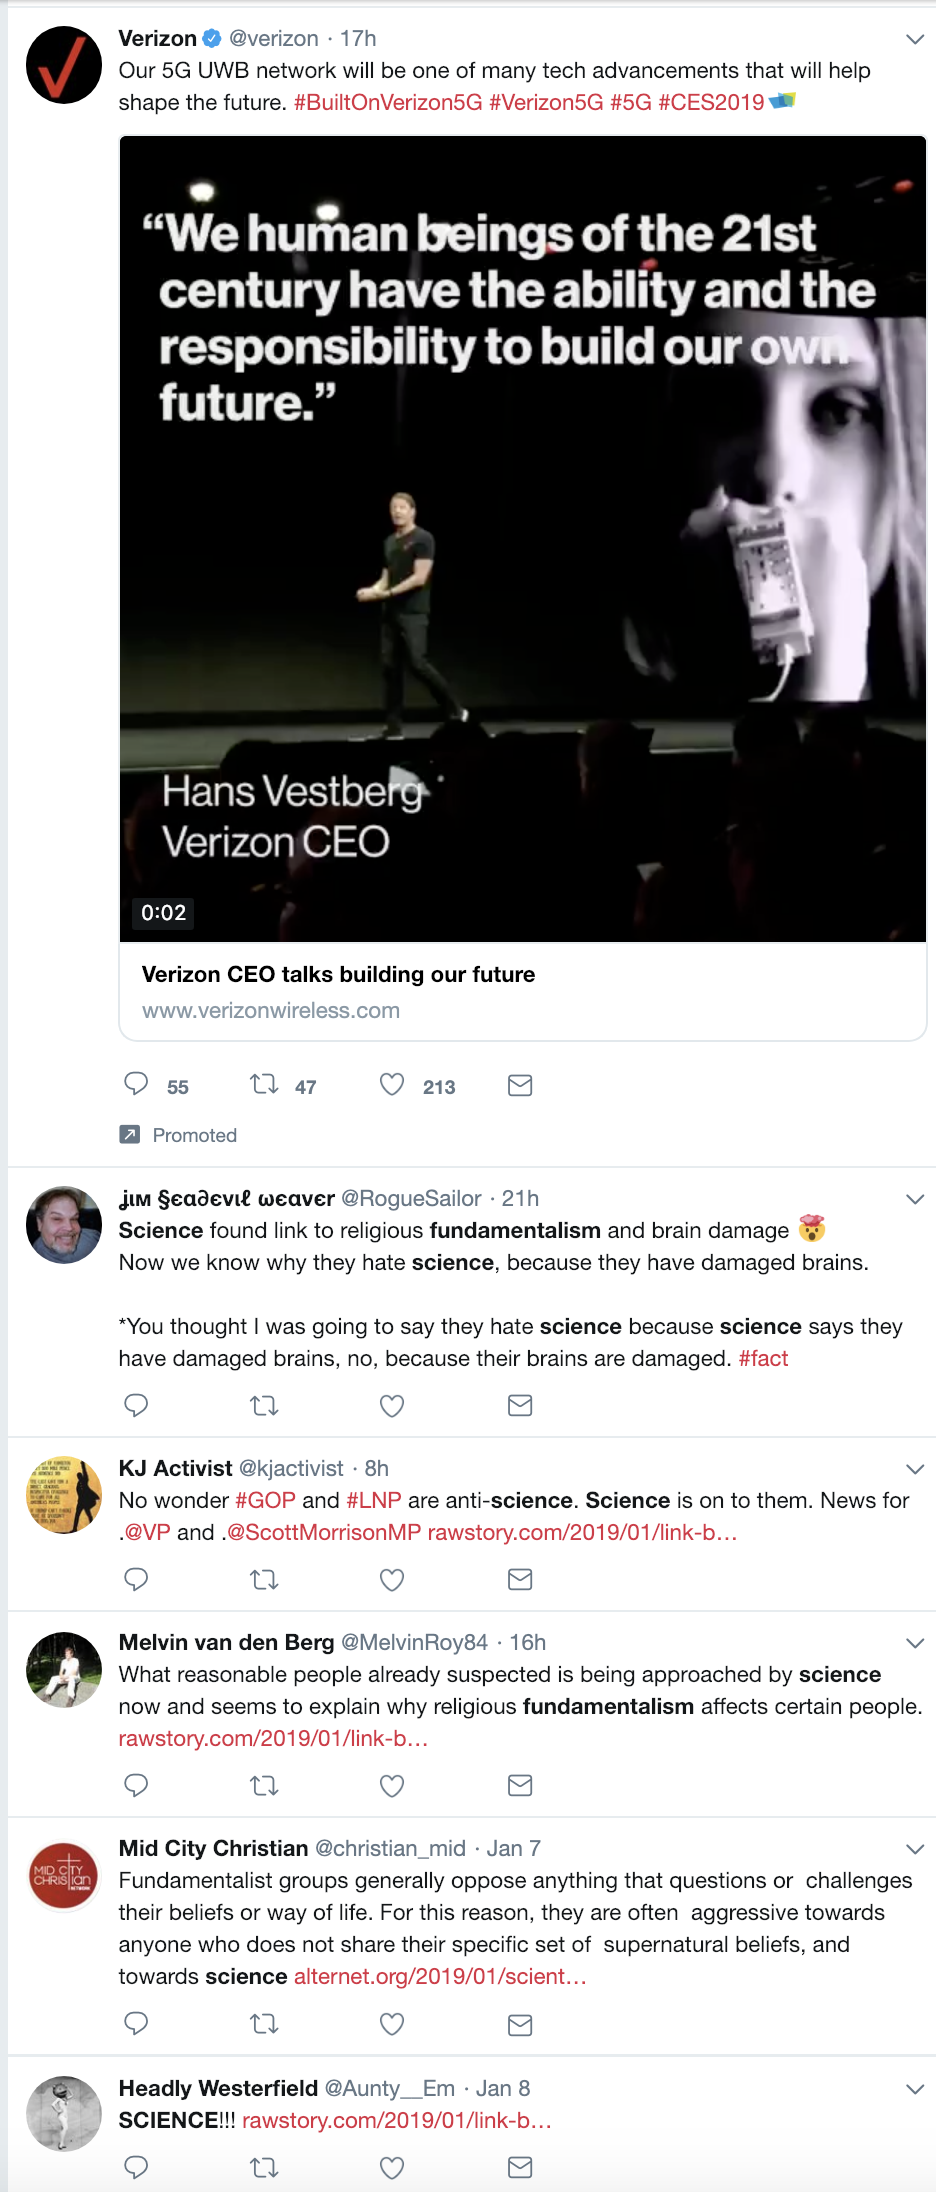 Screen-Shot-2019-01-09-at-11.47.49-AM Link Between Religious Nuts & Brain Damage Announced By Scientists (RESULTS) Politics Religion Science Top Stories